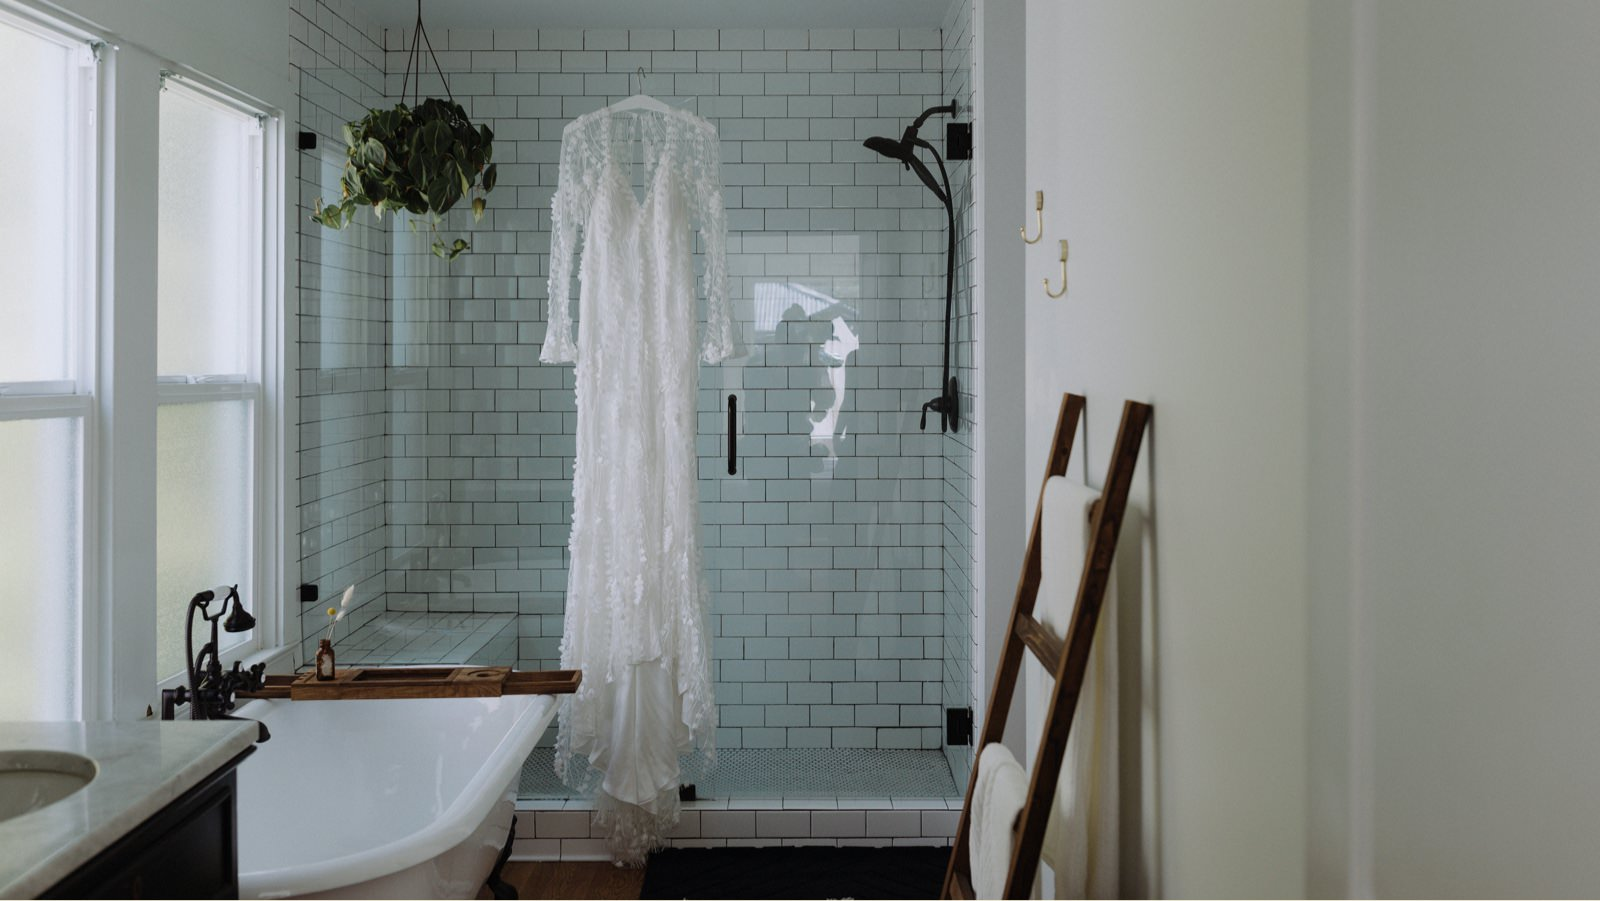 Alexandra Grecco's off-white Dylan wedding gown hanging on the glass shower in a titled bathroom, with subtle bell sleeves